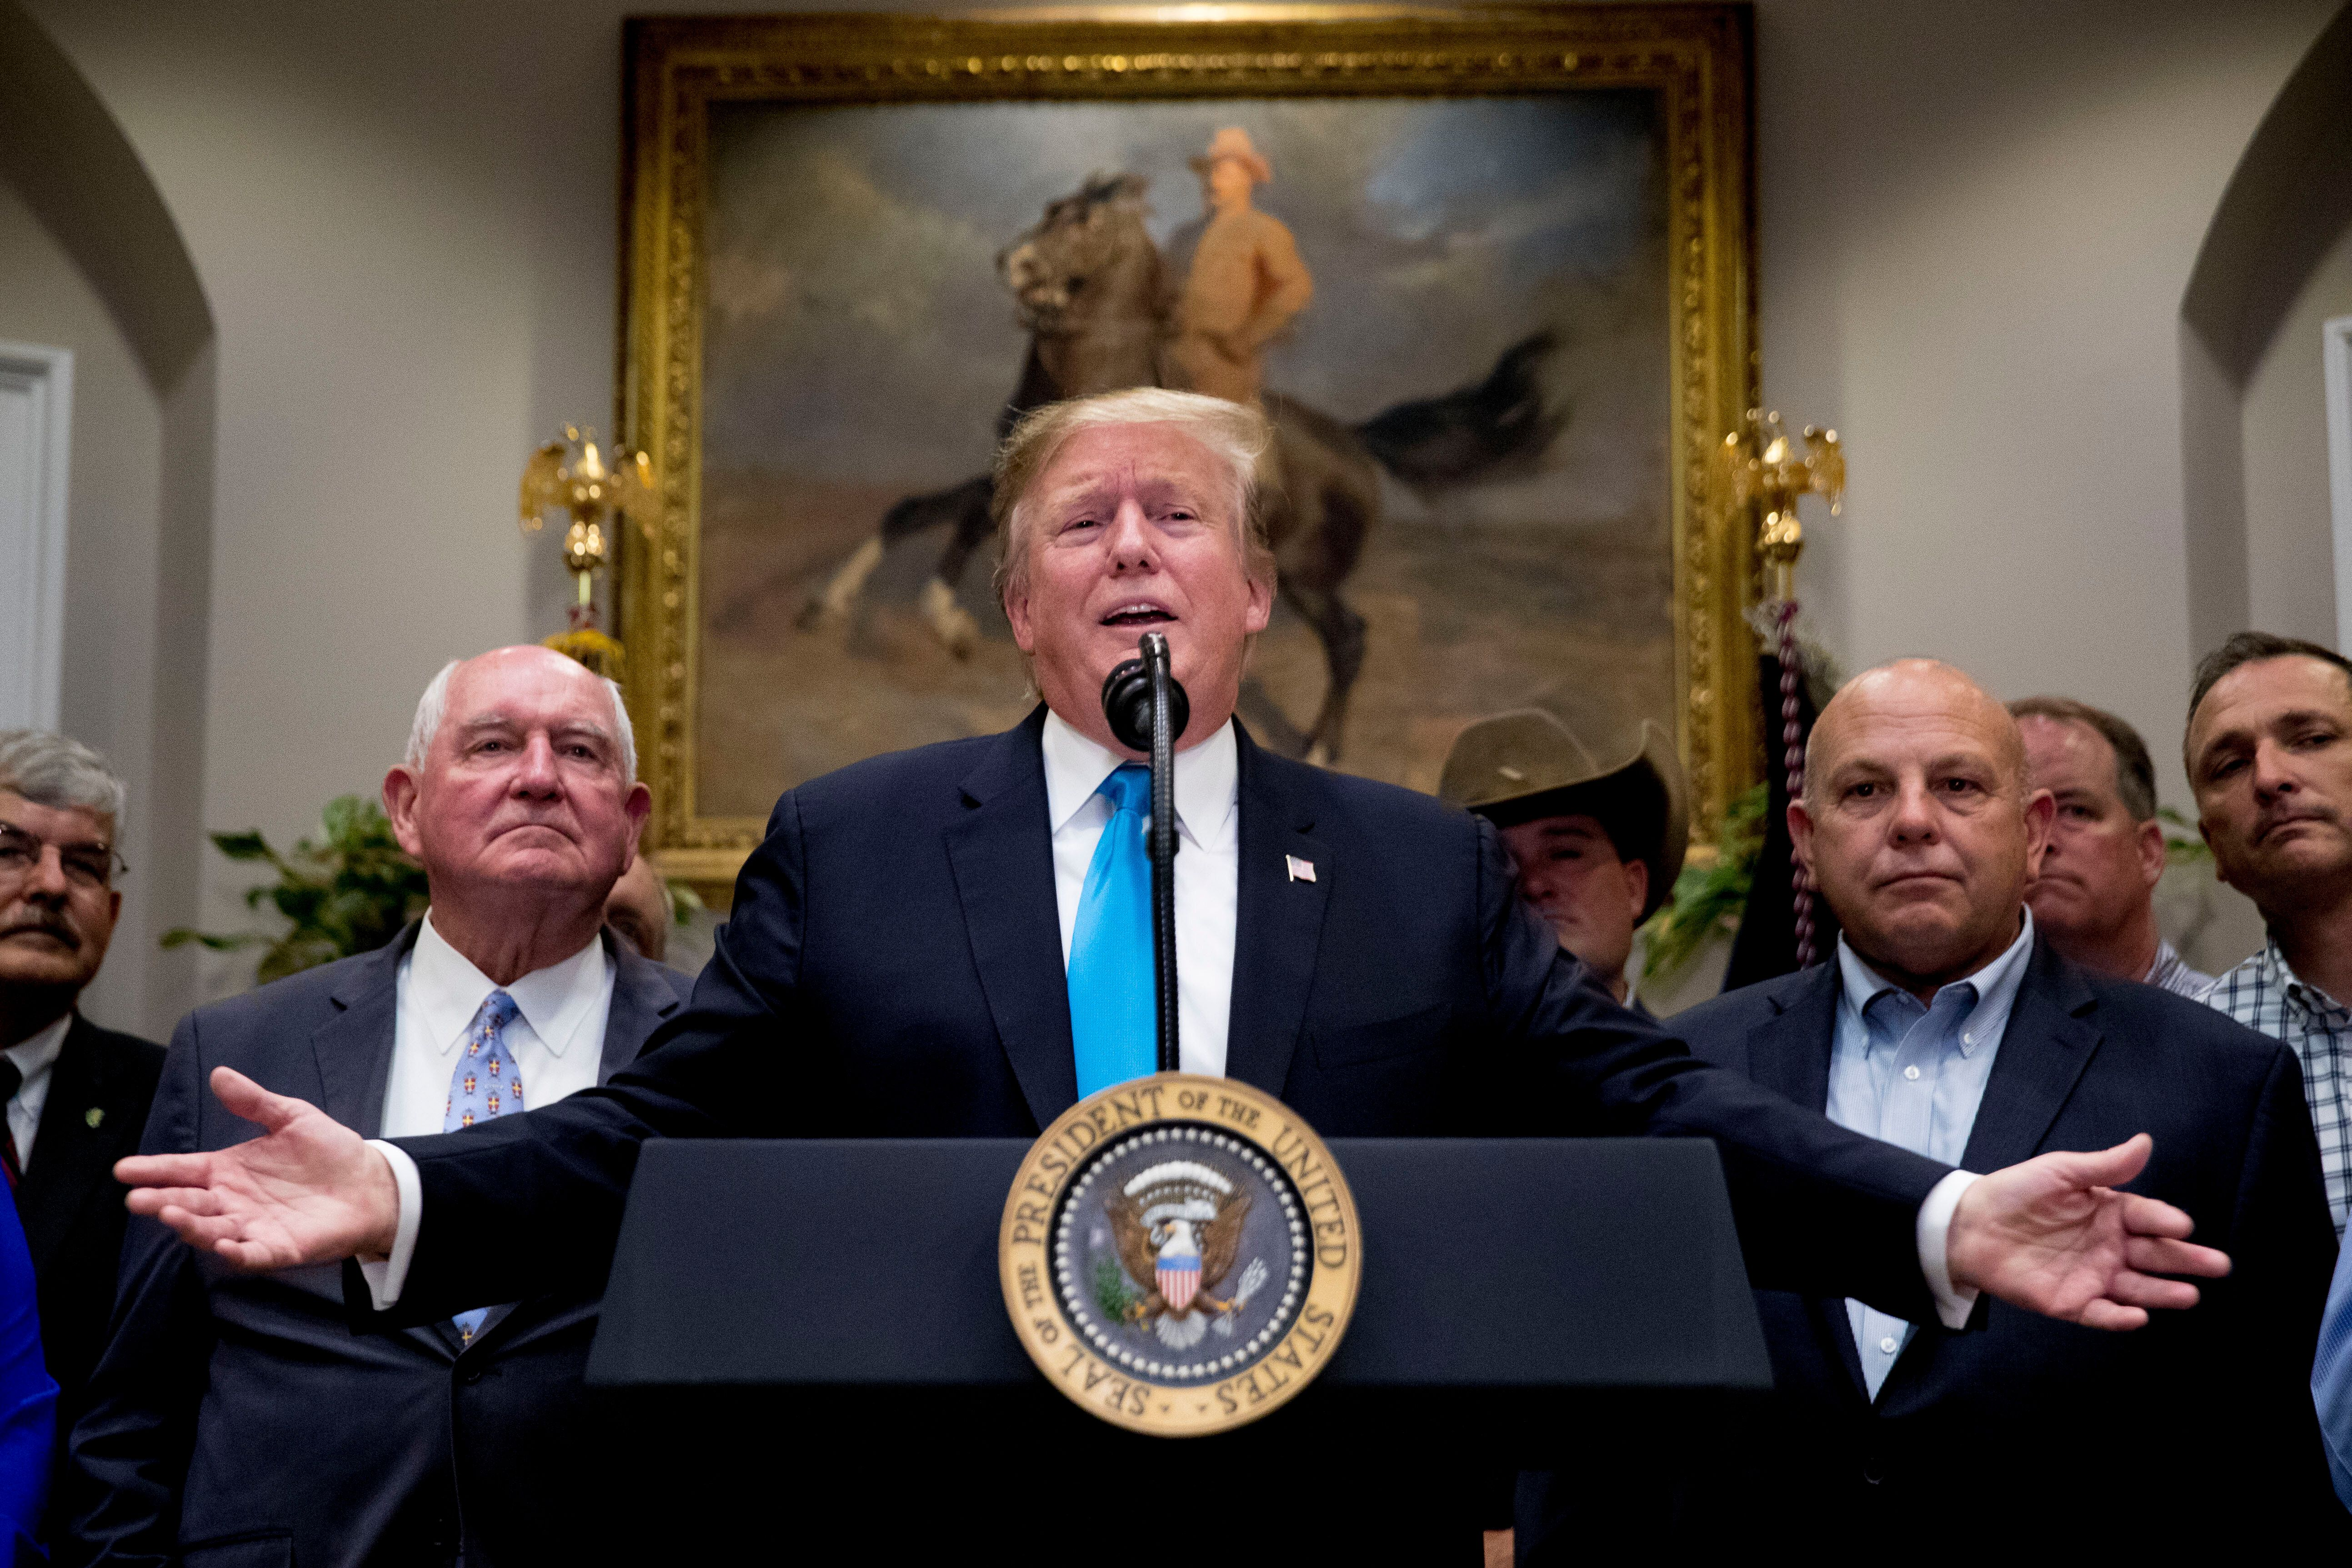 President Donald Trump, accompanied by Agriculture Secretary Sonny Perdue, left, gestures as he answers a question from a reporter during a meeting to support America's farmers and ranchers in the Roosevelt Room of the White House, Thursday, May 23, 2019, in Washington. (AP Photo/Andrew Harnik)